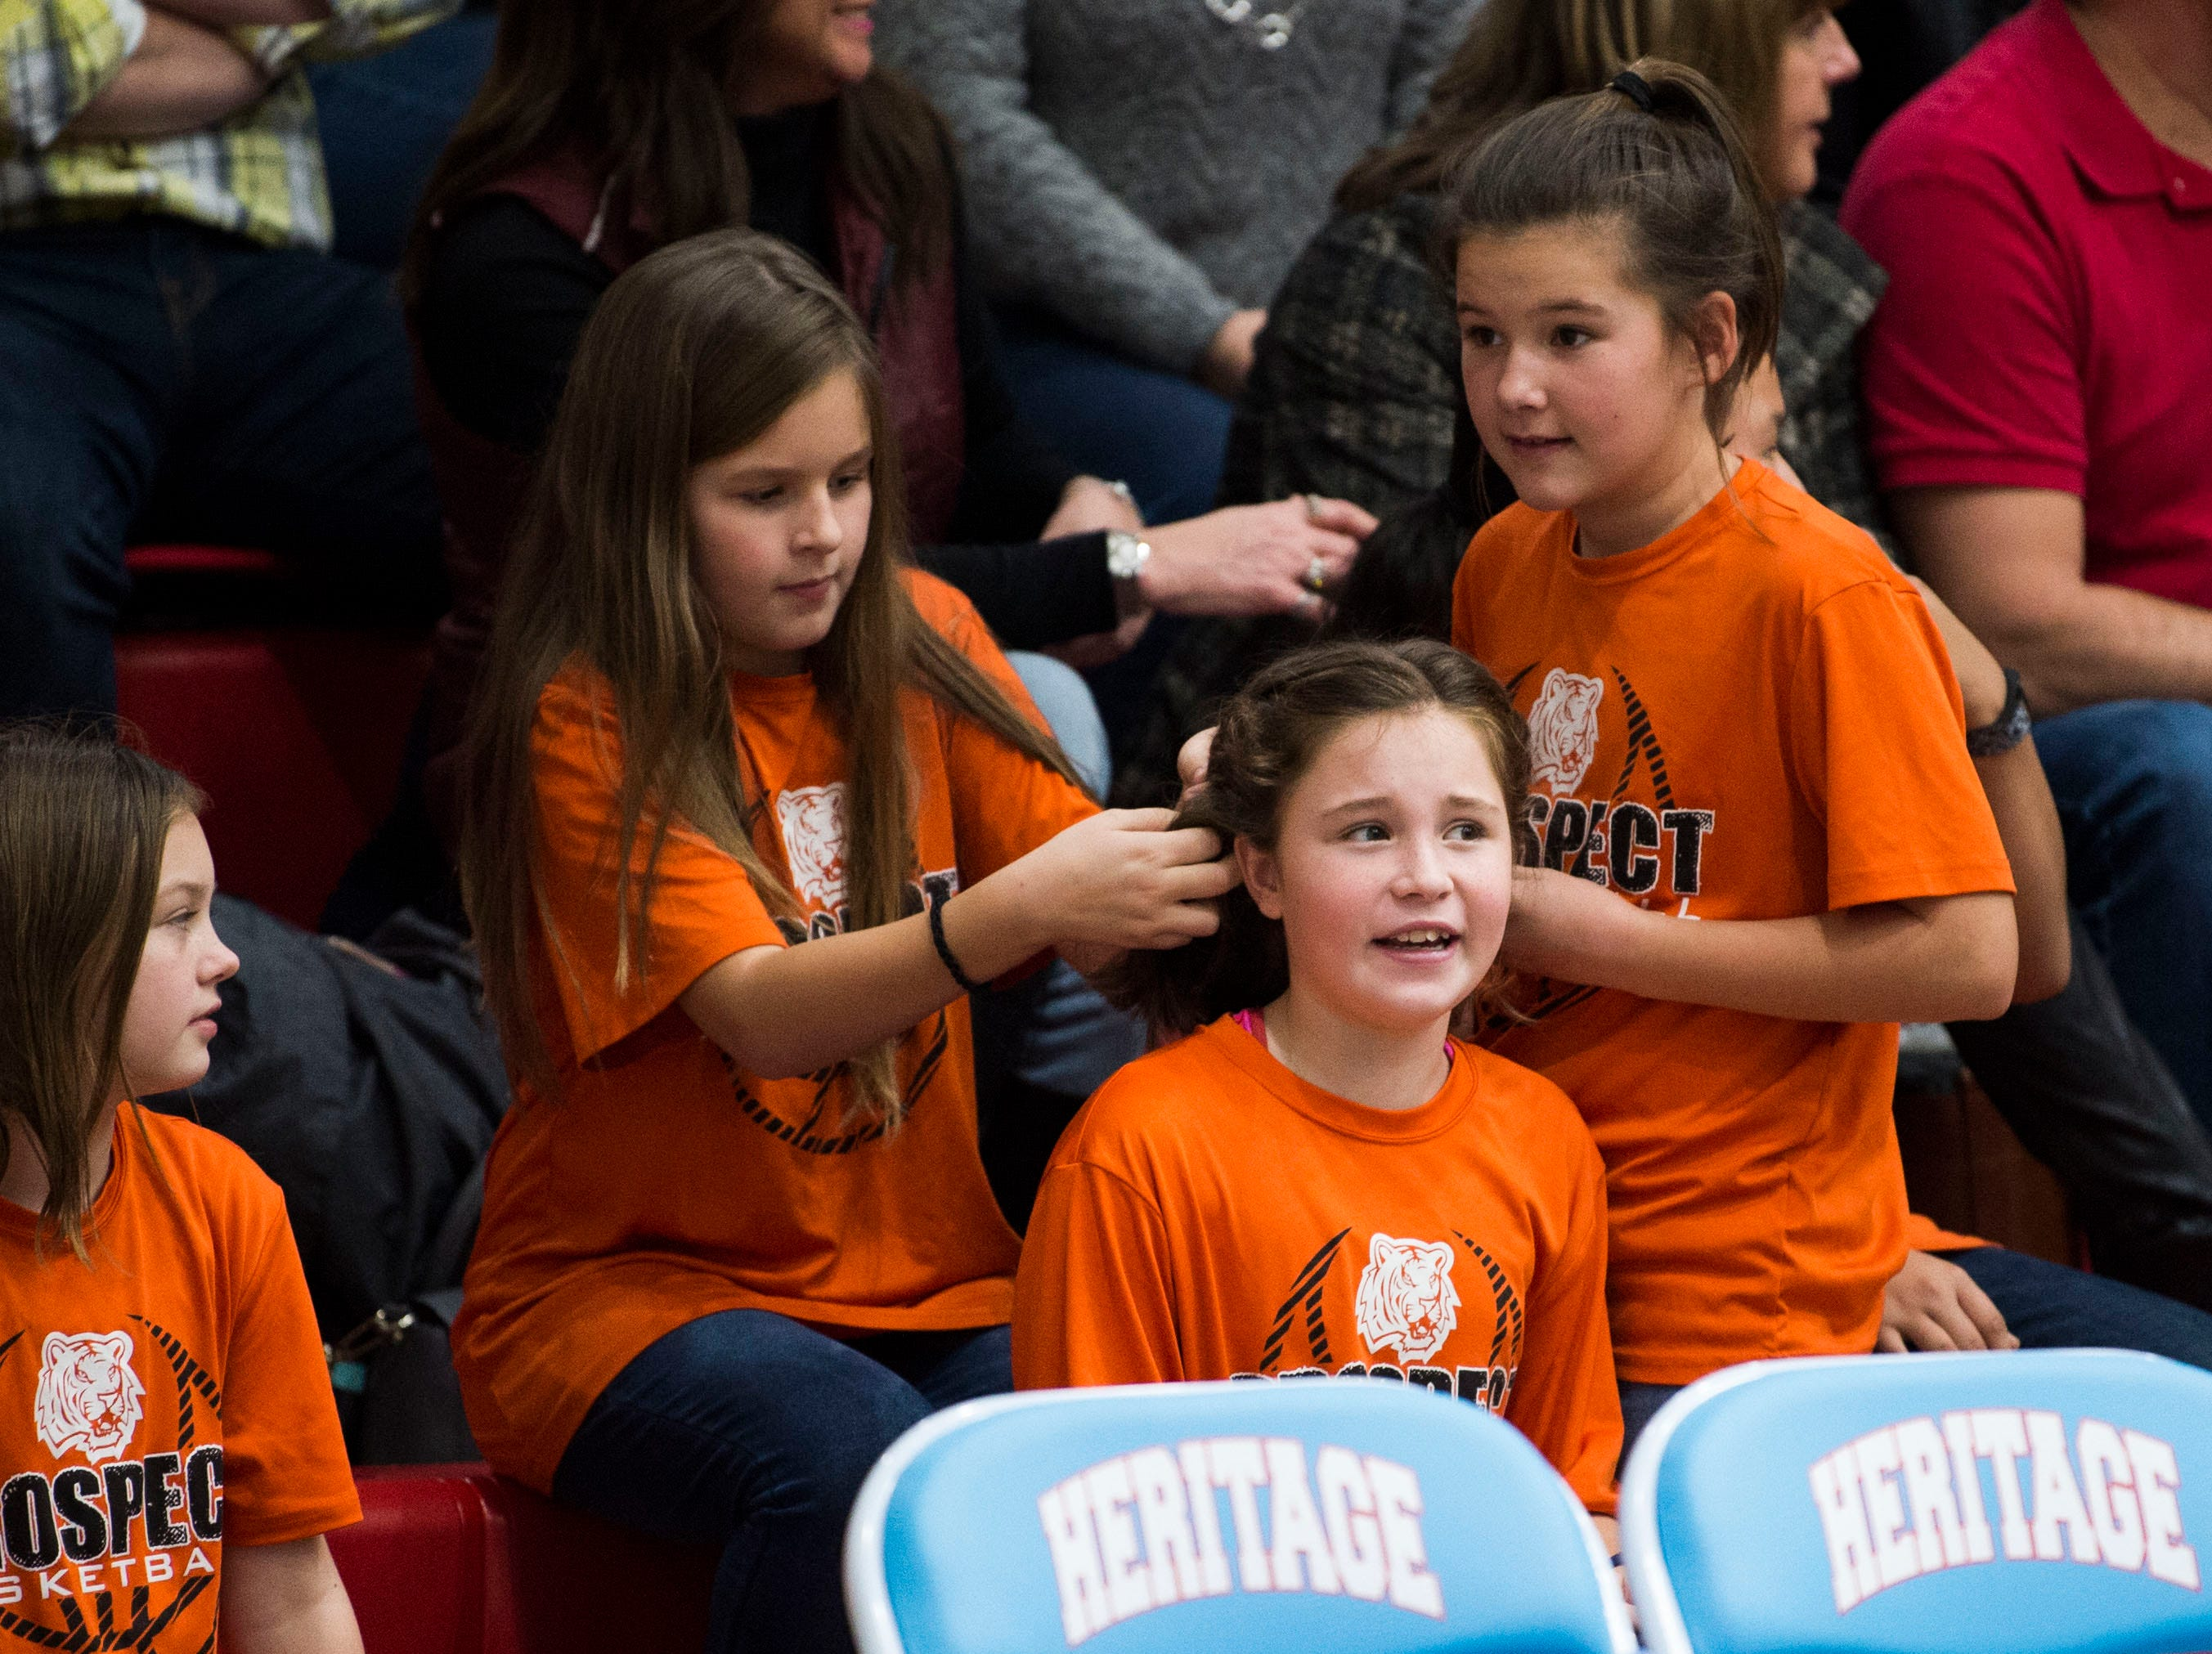 At center Faith Morris, 10, has her hair done by Kenley Coker, 10, and Ella Robertson, 10, during a high school basketball game between Maryville and Heritage at Heritage Friday, Jan. 4, 2019. Both Maryville boys and girls teams beat Heritage.